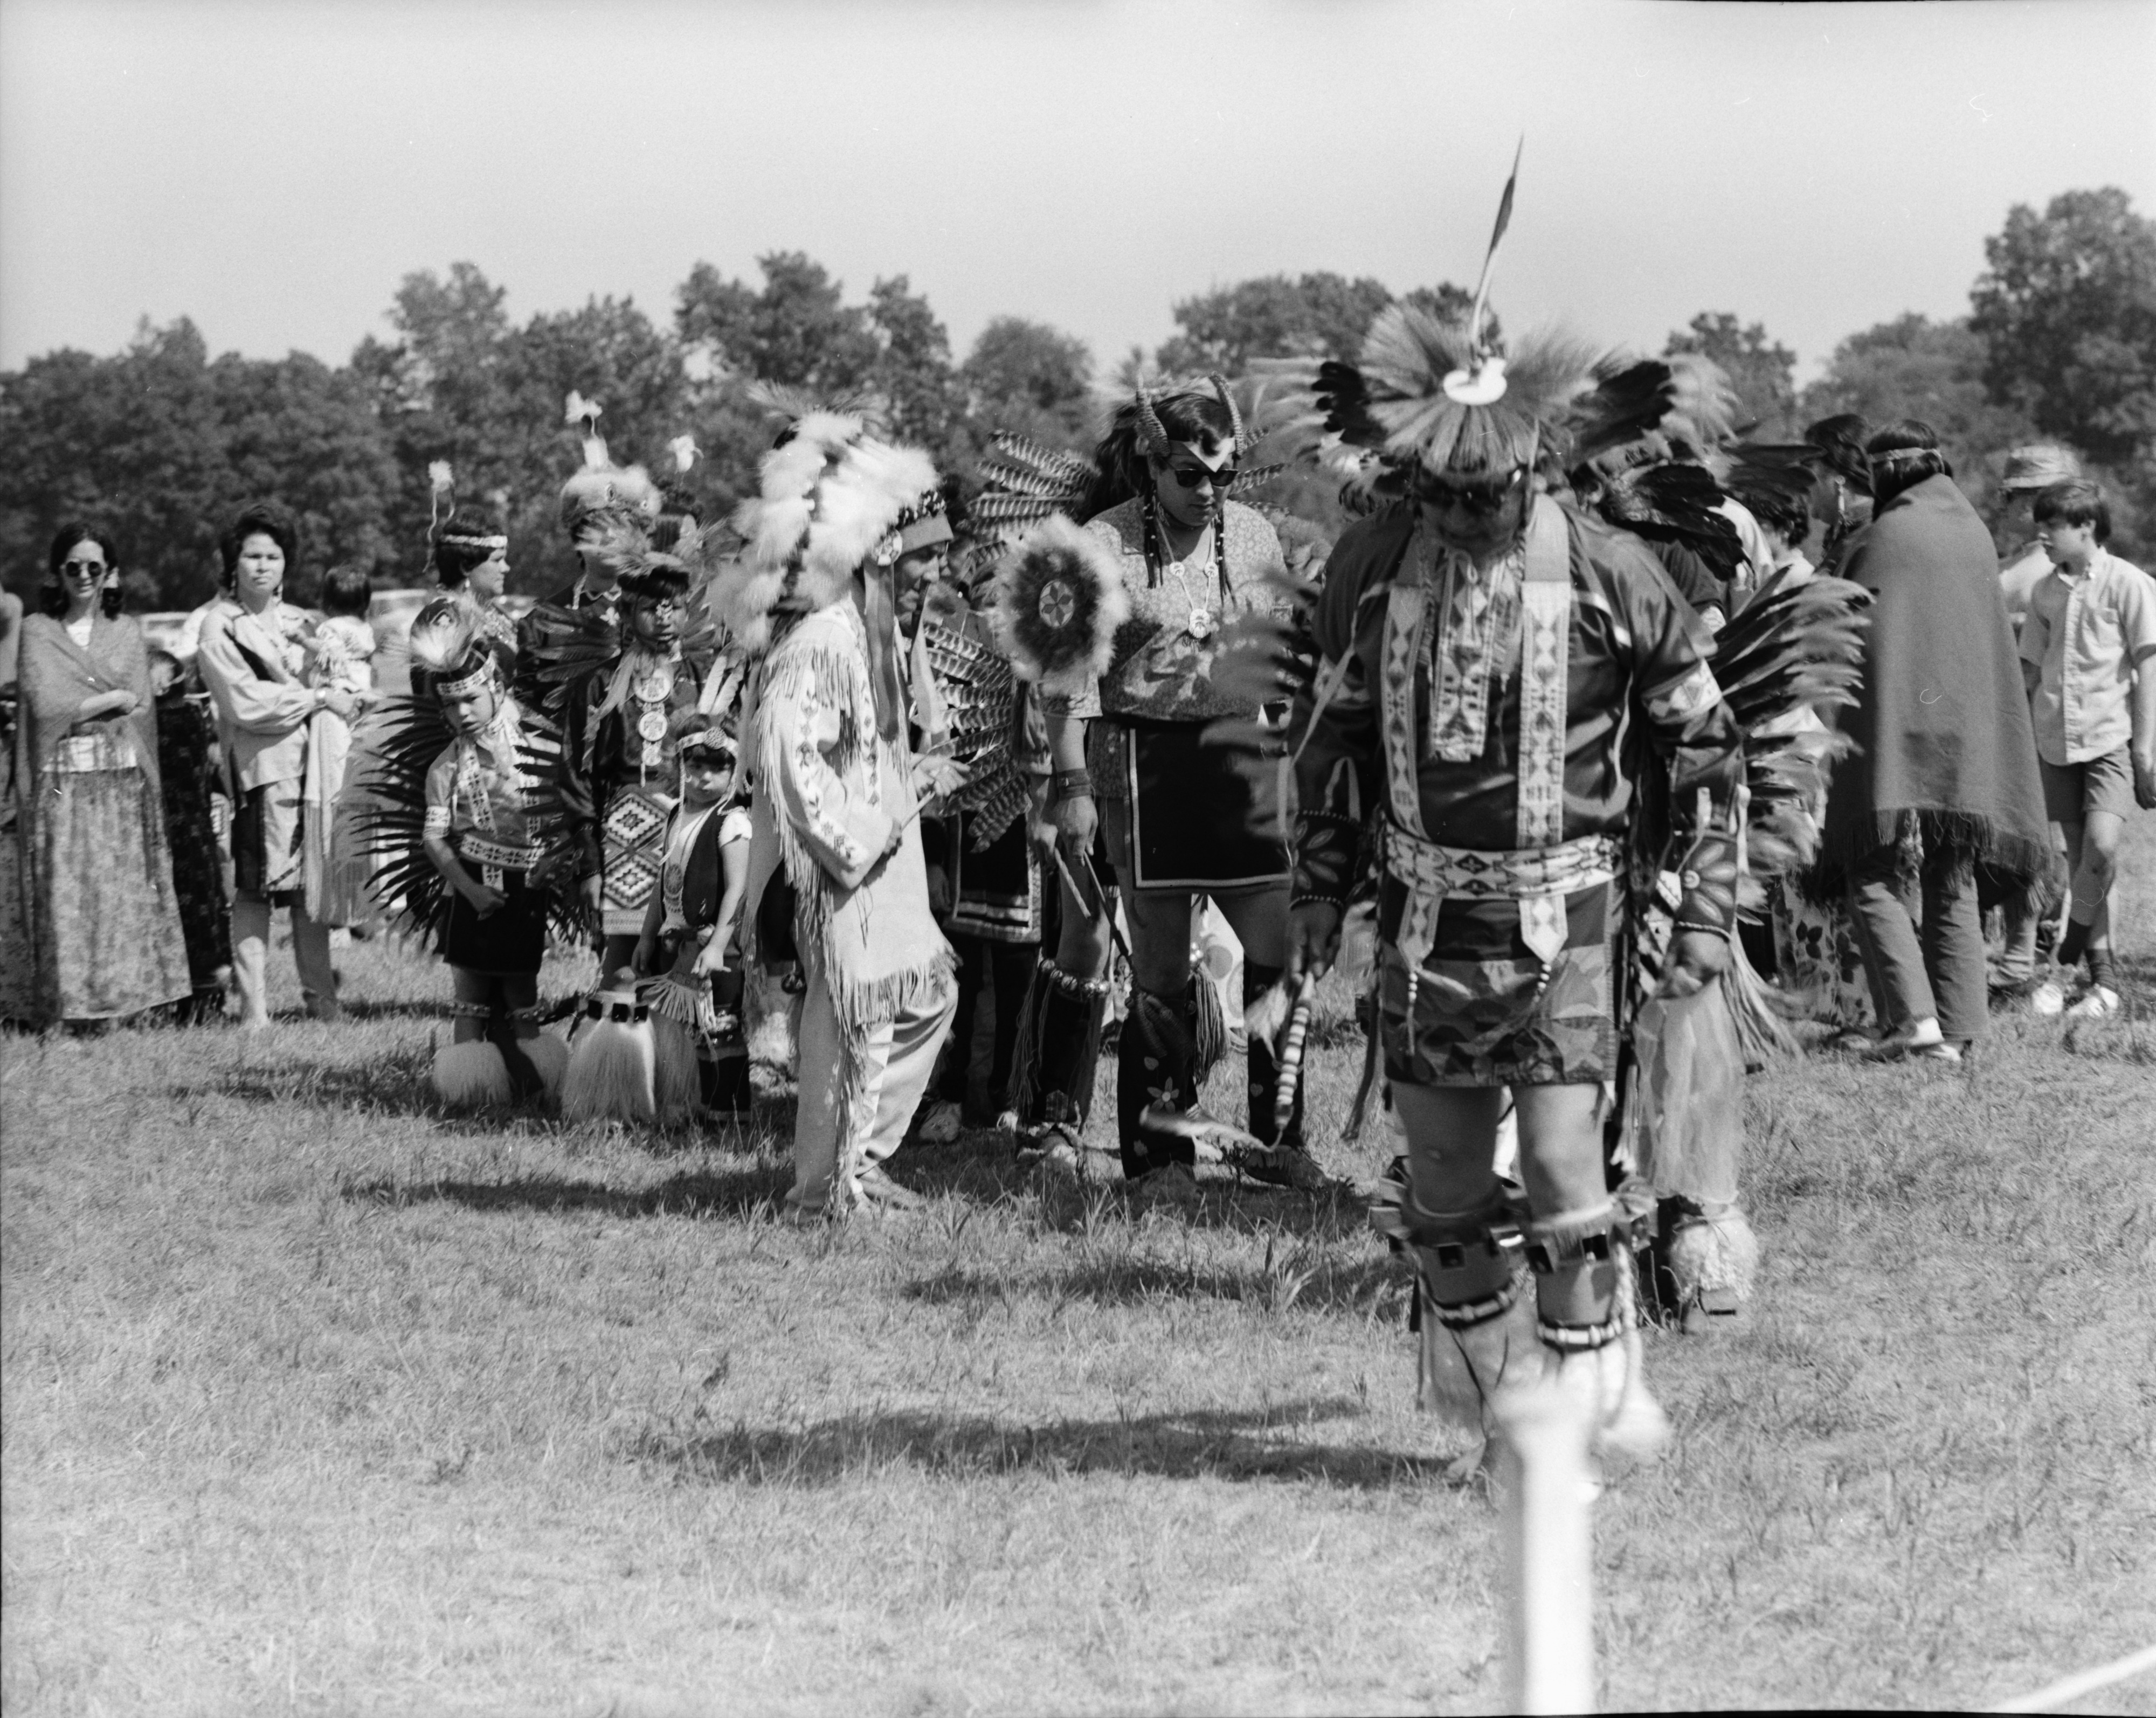 Michigan Indian Powwow, Knights of Columbus Park, Dexter Rd., August 1971 image